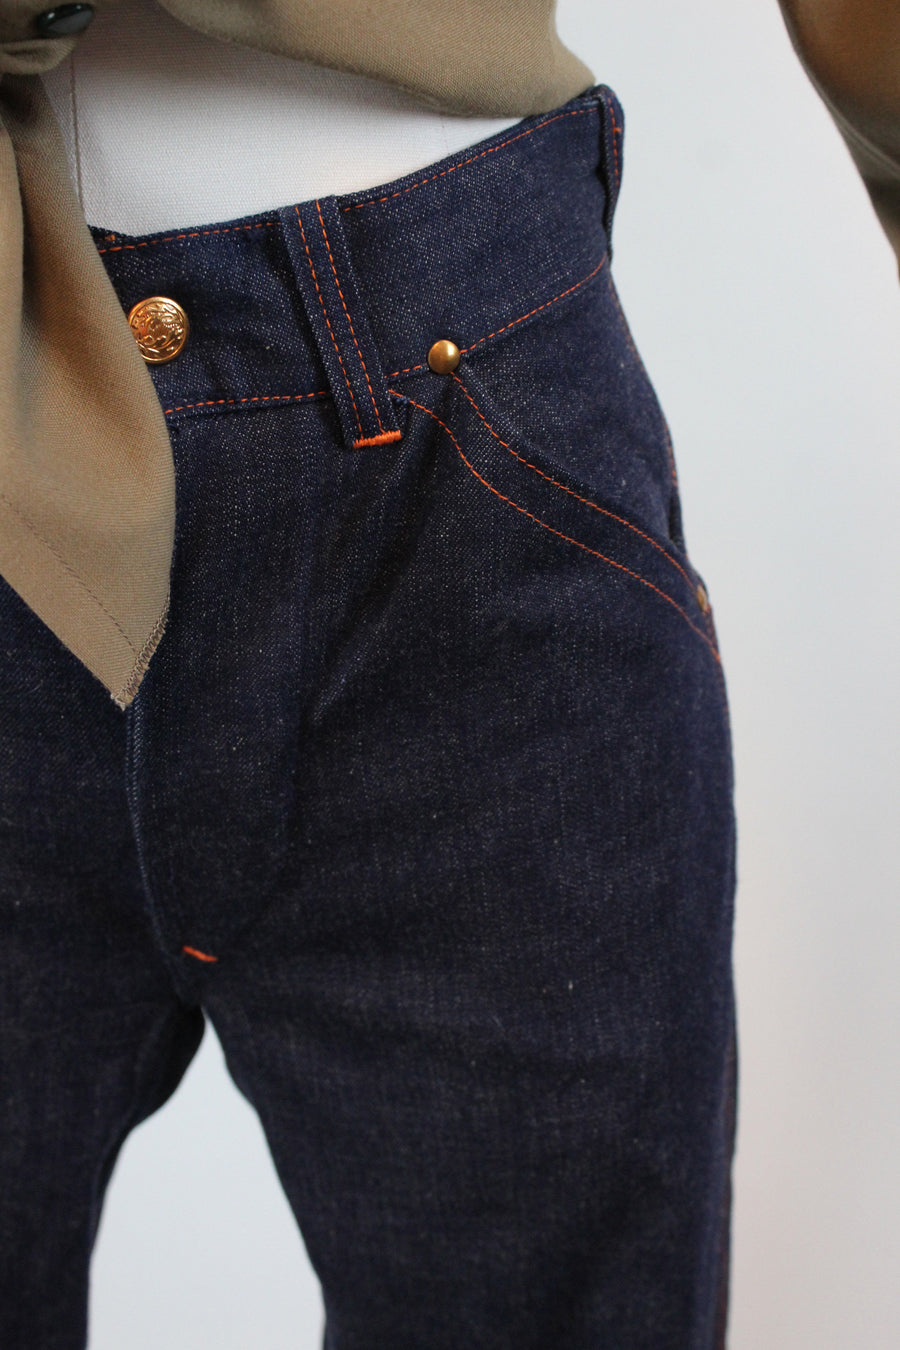 1950s DEADSTOCK State Fair Anvil Brand jeans denim workwear xs small | new fall